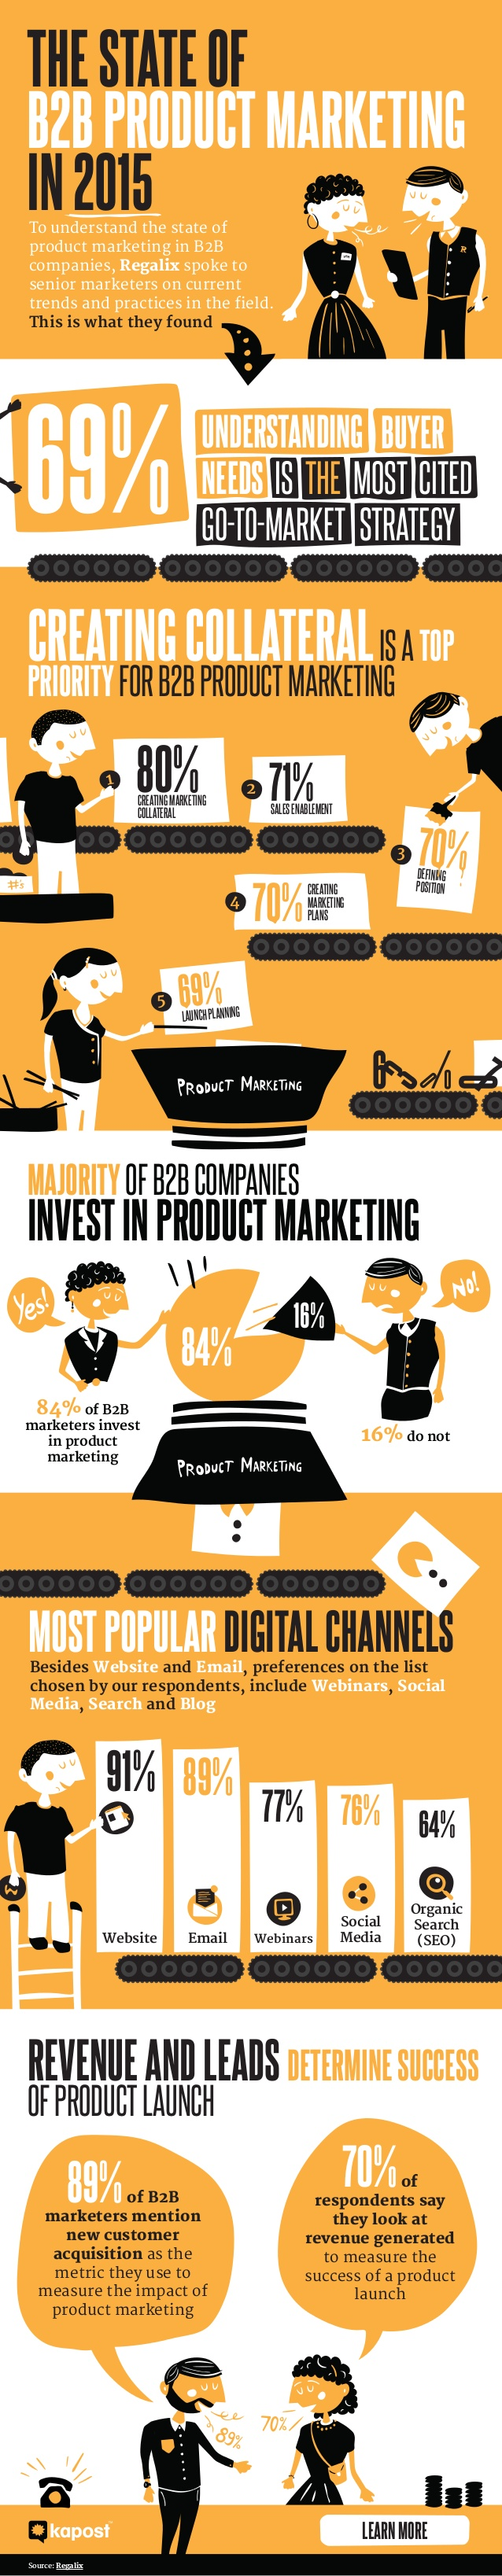 Estado del marketing de producto B2B en 2015